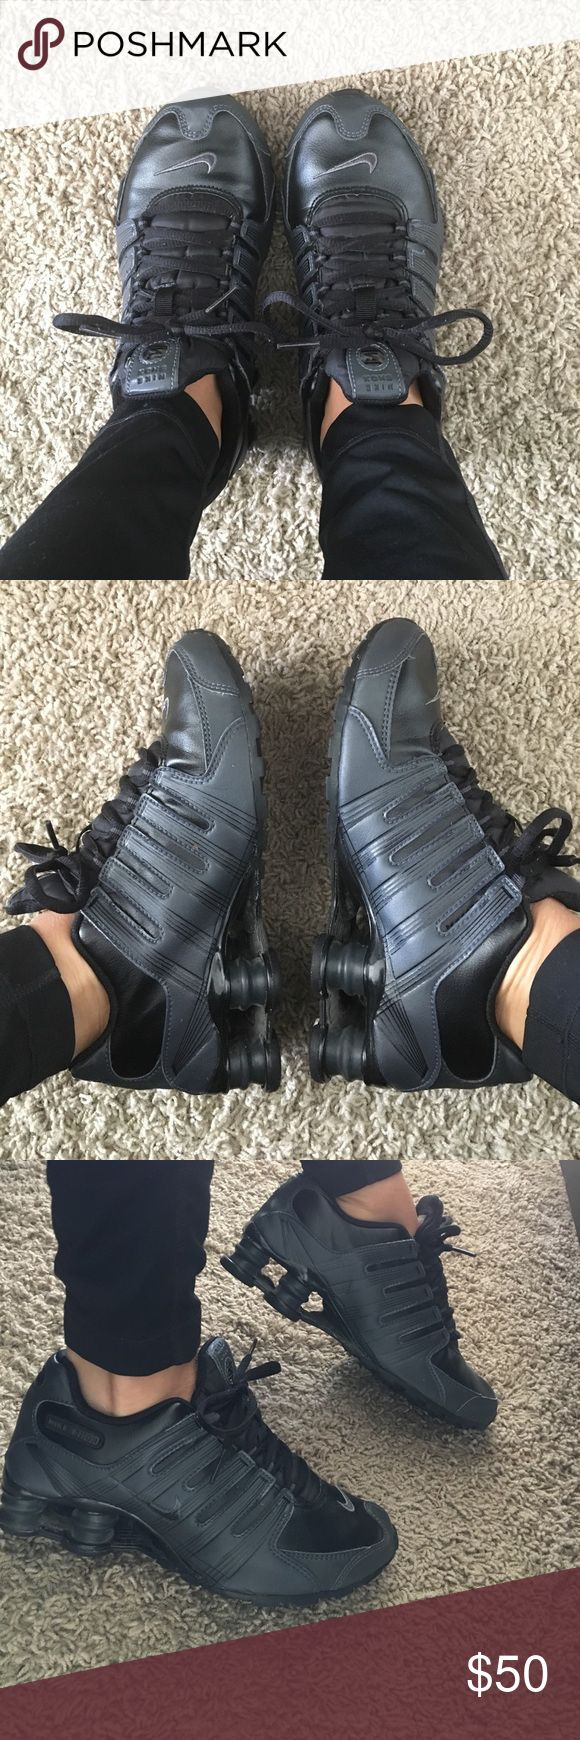 Nike Shox Barely worn black Nike shox. Great condition. Leather, durable. 4.5 youth fits a 6-6.5 in women's 😉 Nike Shoes Sneakers